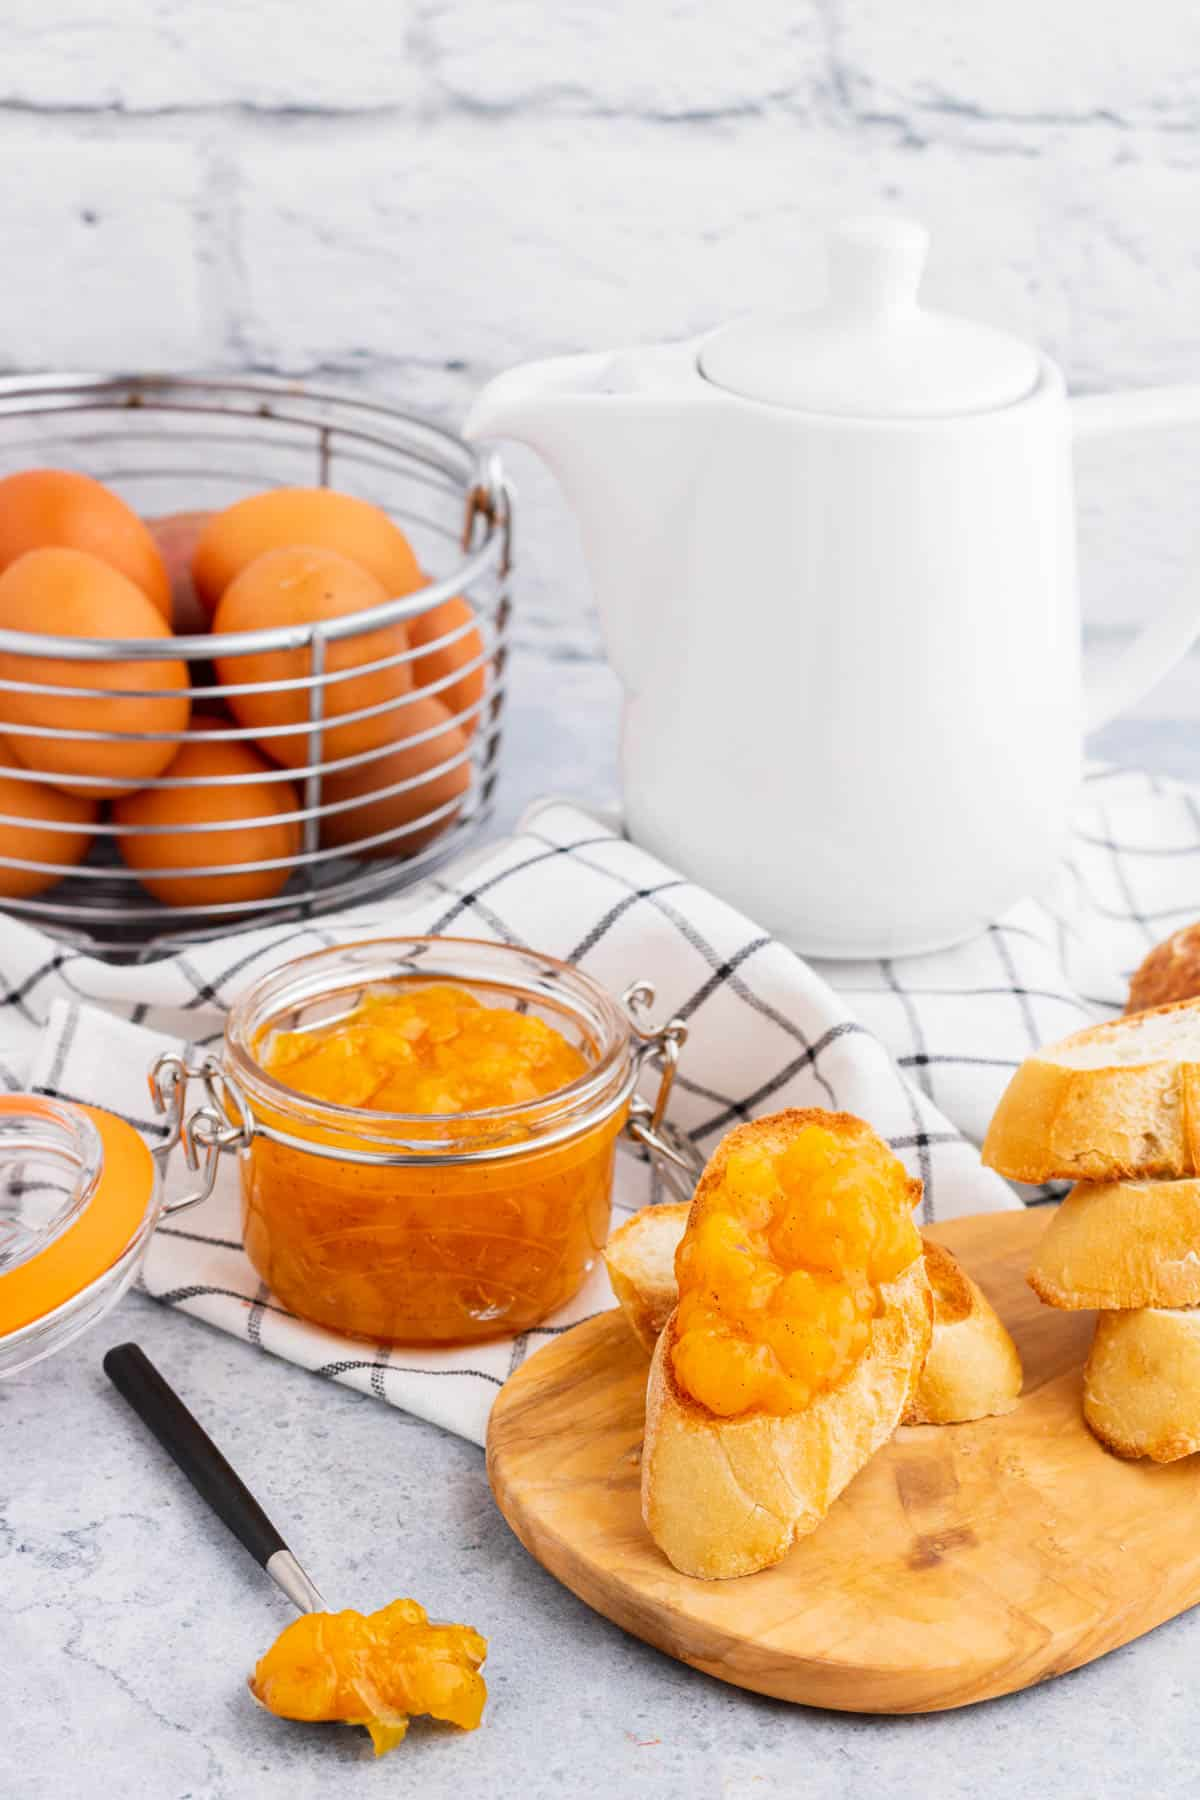 Breakfast scene with a coffee pot, eggs, and toast covered in bright orange Peach Freezer Jam in front of a jar of the same jam.